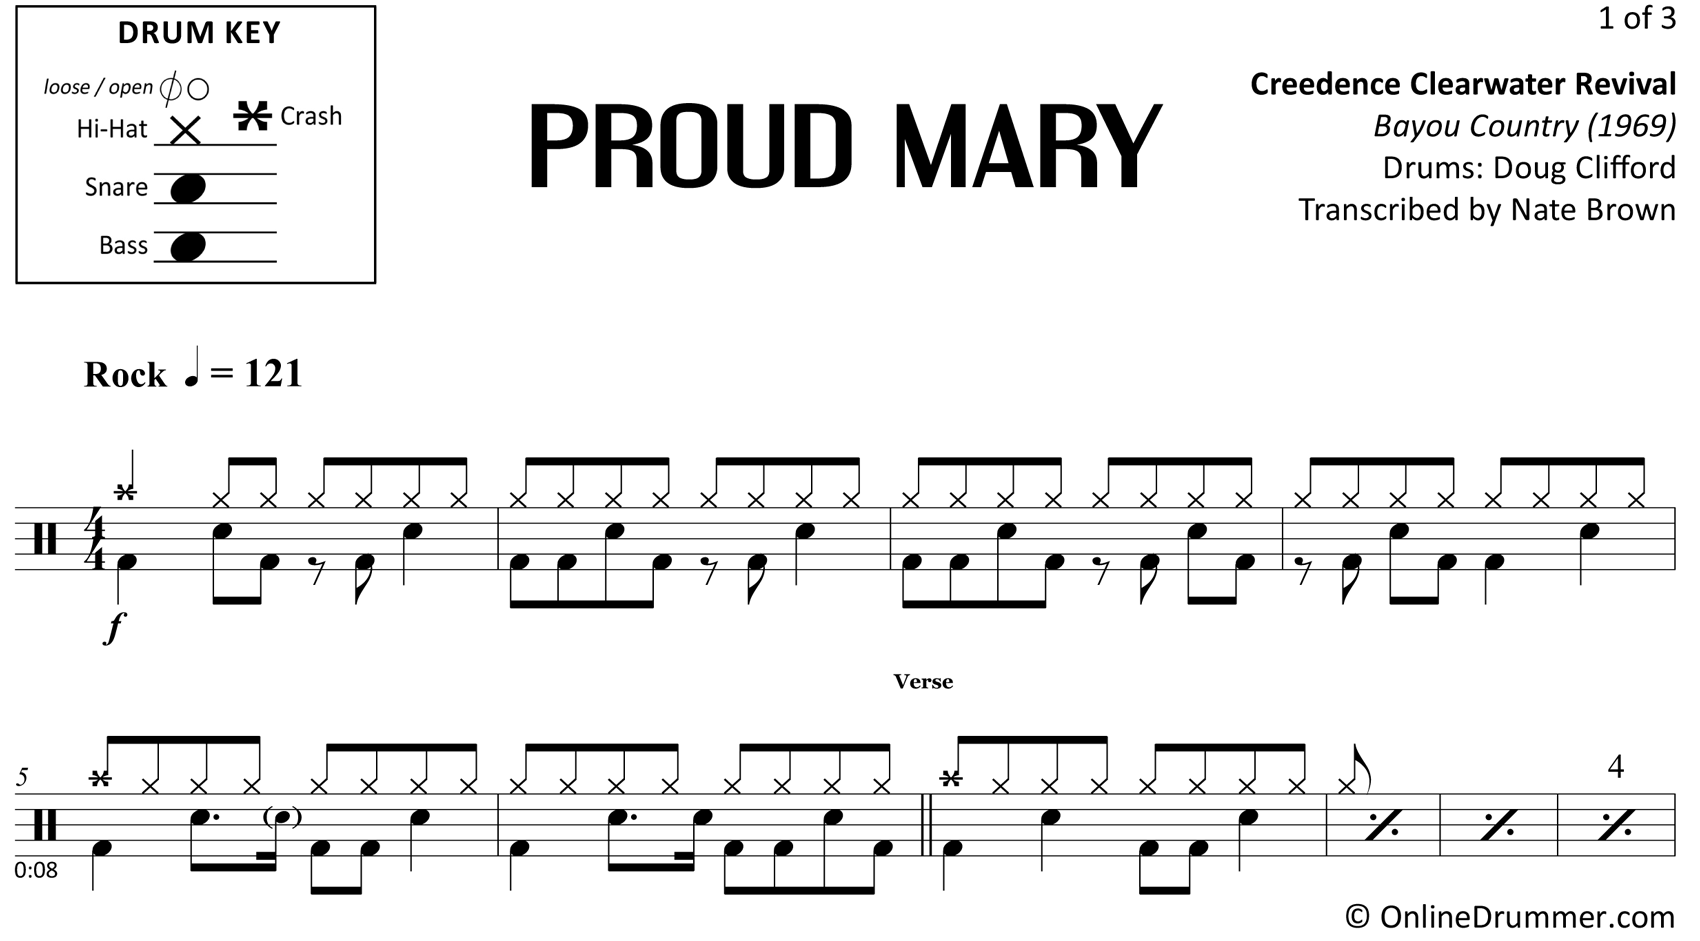 Proud Mary - Creedence Clearwater Revival - Drum Sheet Music